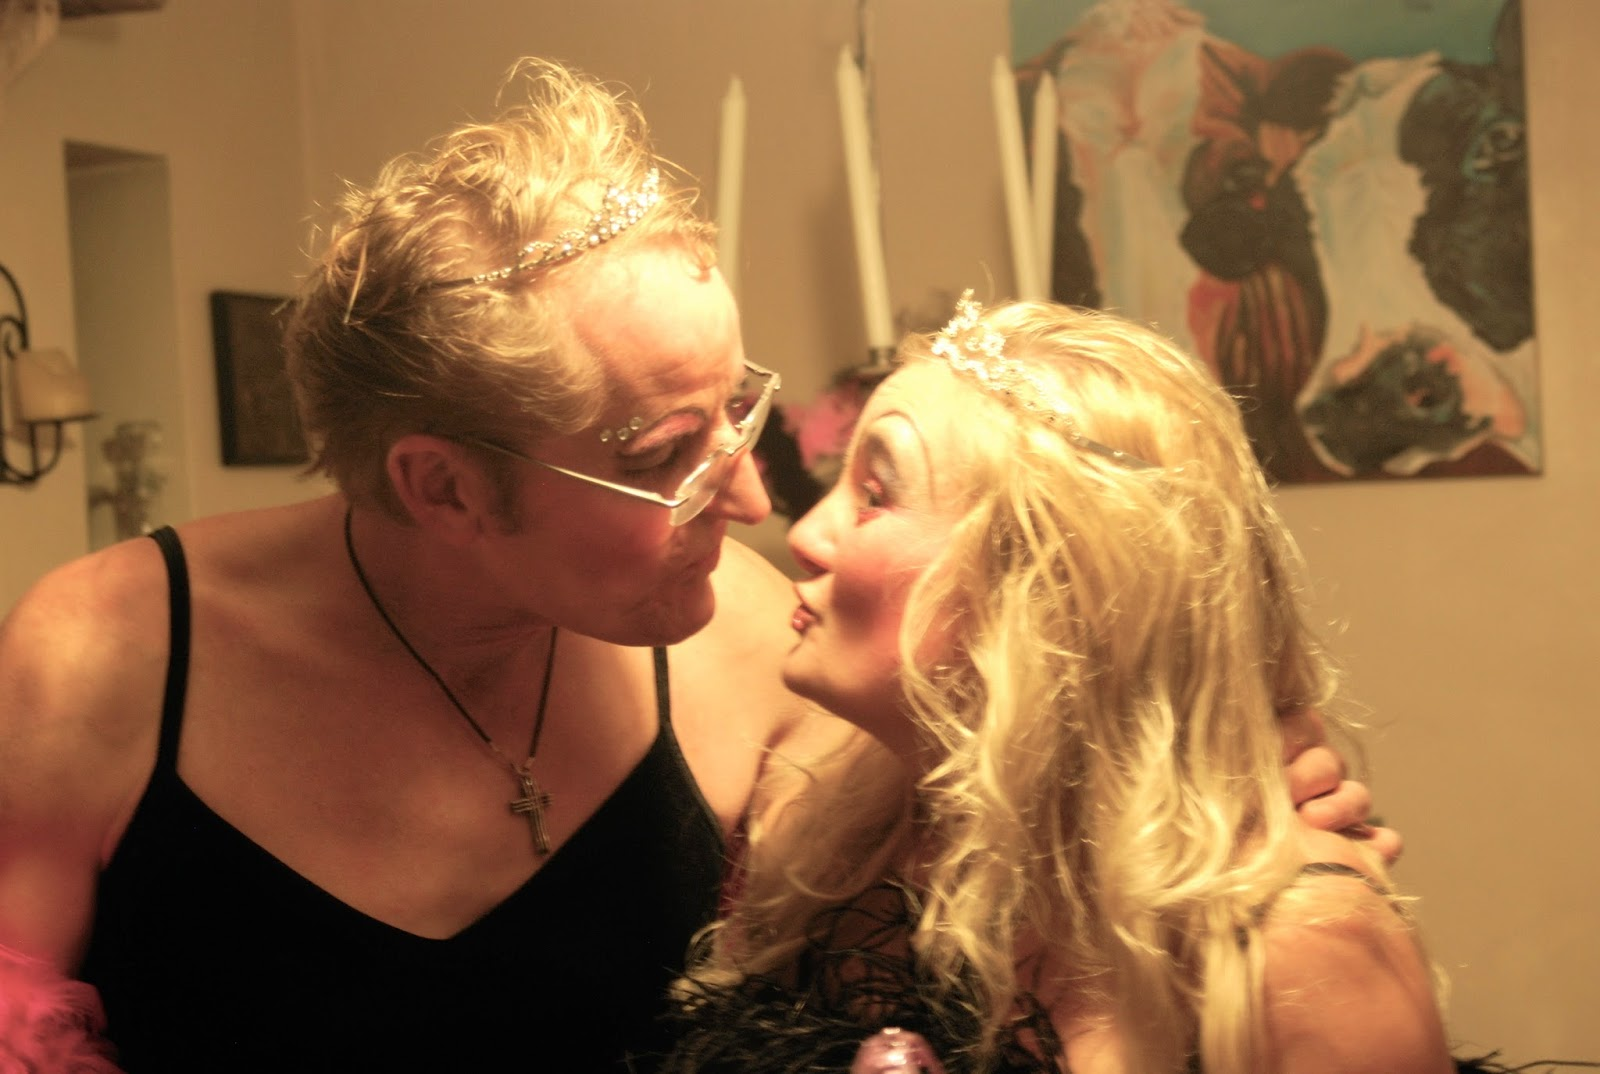 couple kissing at Drag Queen themed dinner party